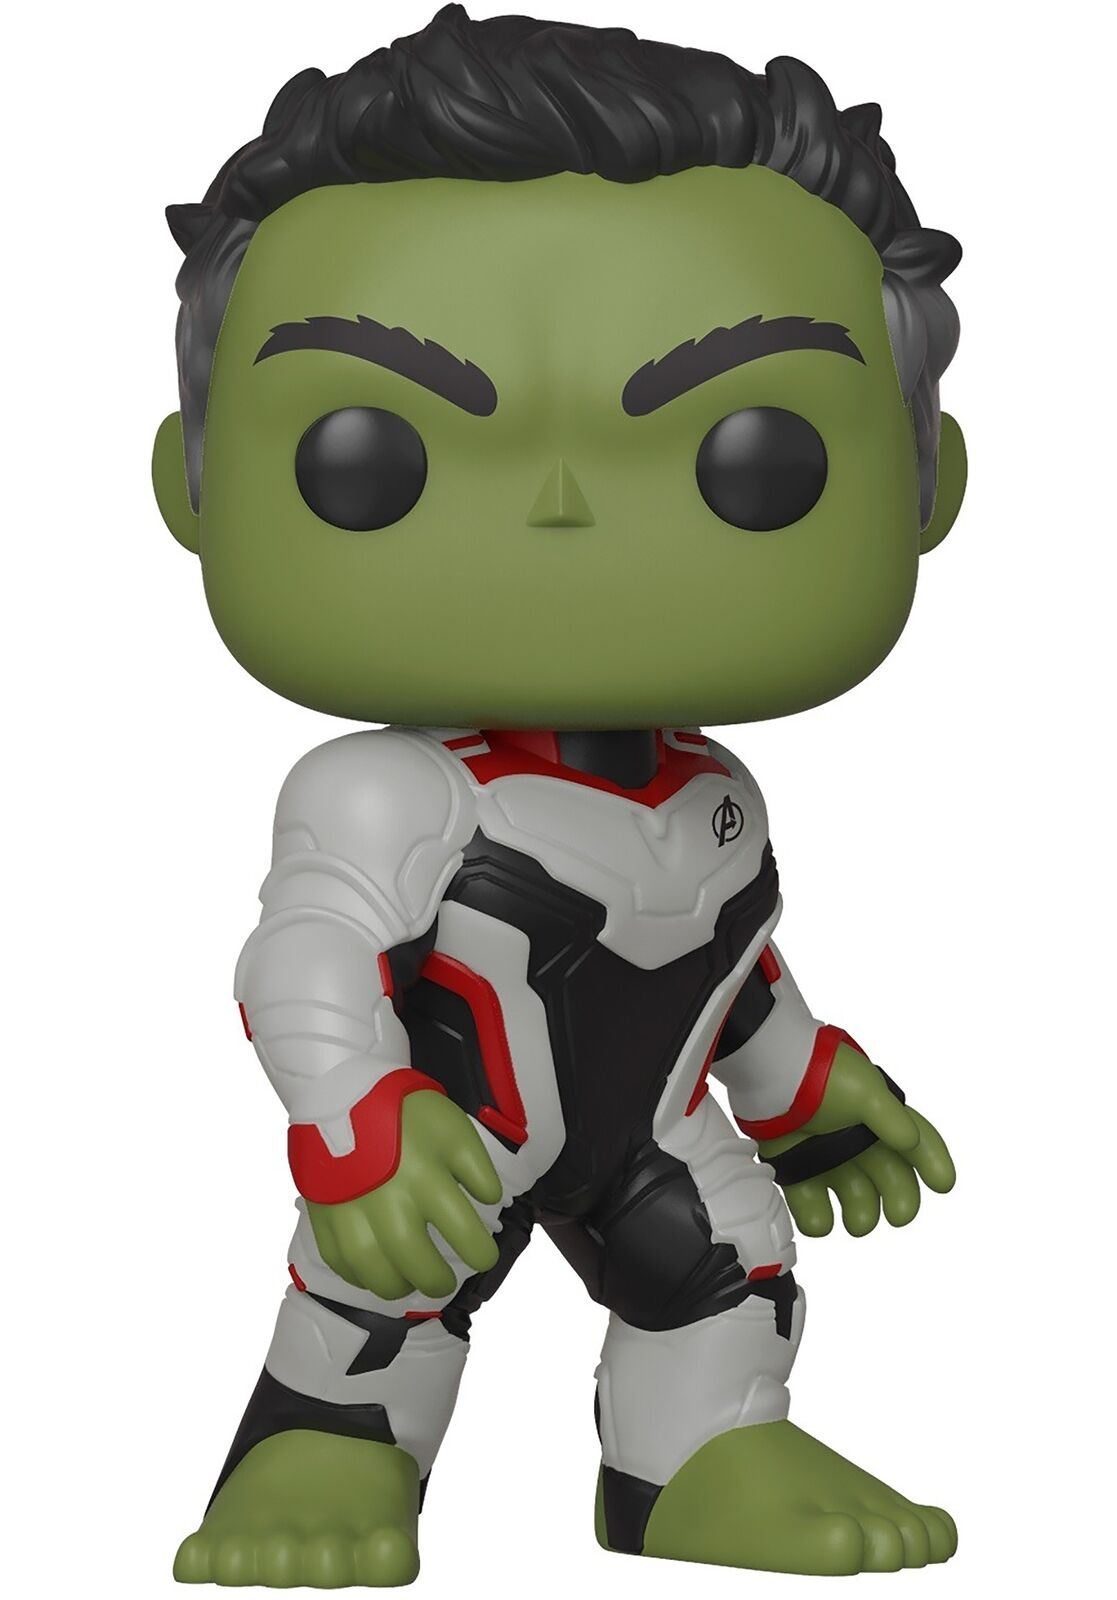 Funko-Endgame-Pop-Marvel-Avengers-Endgame-Vinyl-Collectables-Figures thumbnail 17